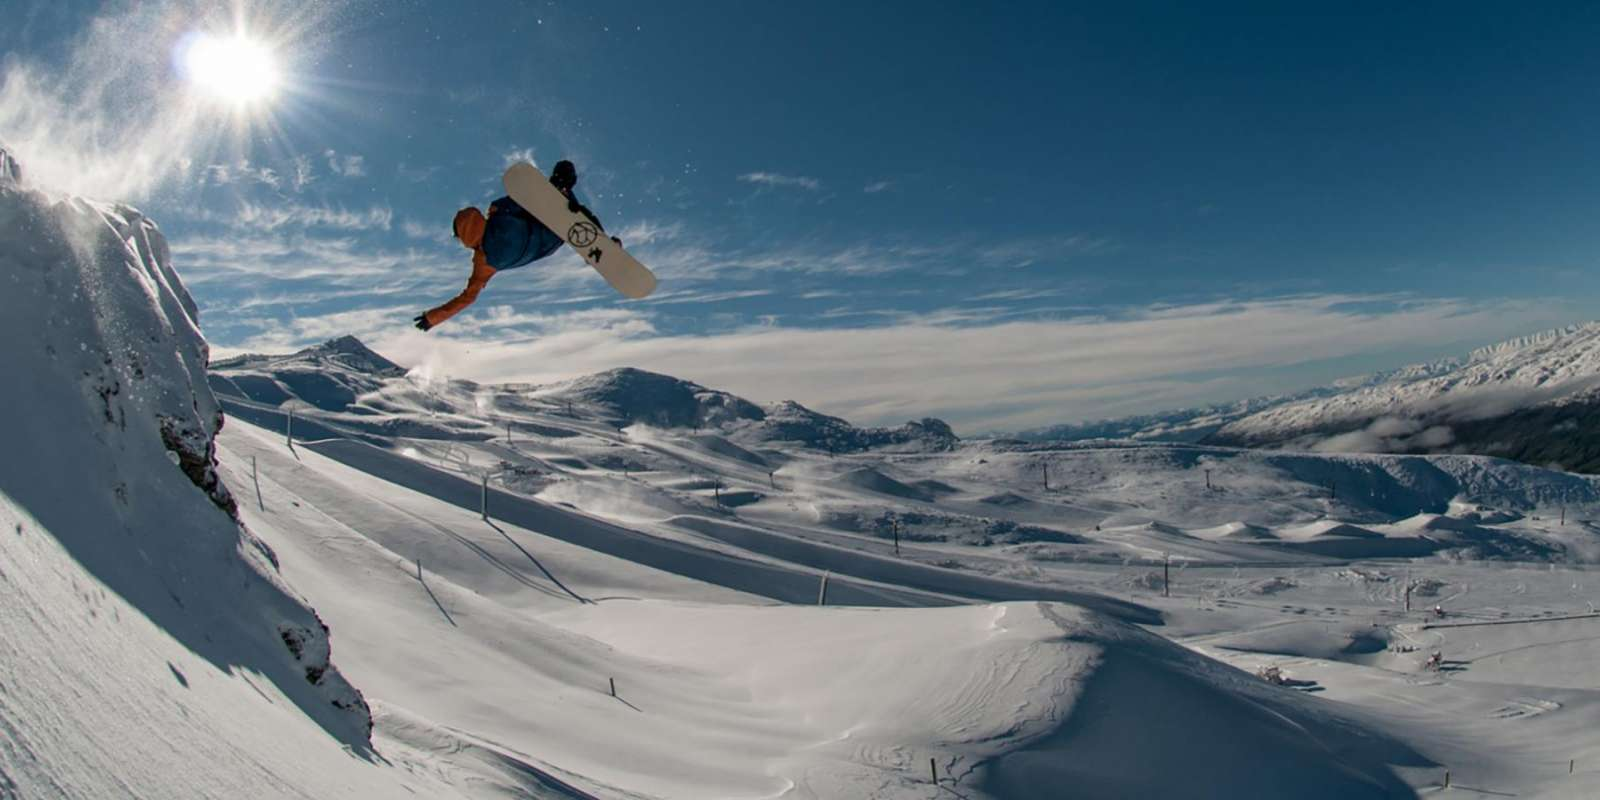 Stef Zeestraten at Cardrona Alpine Resort